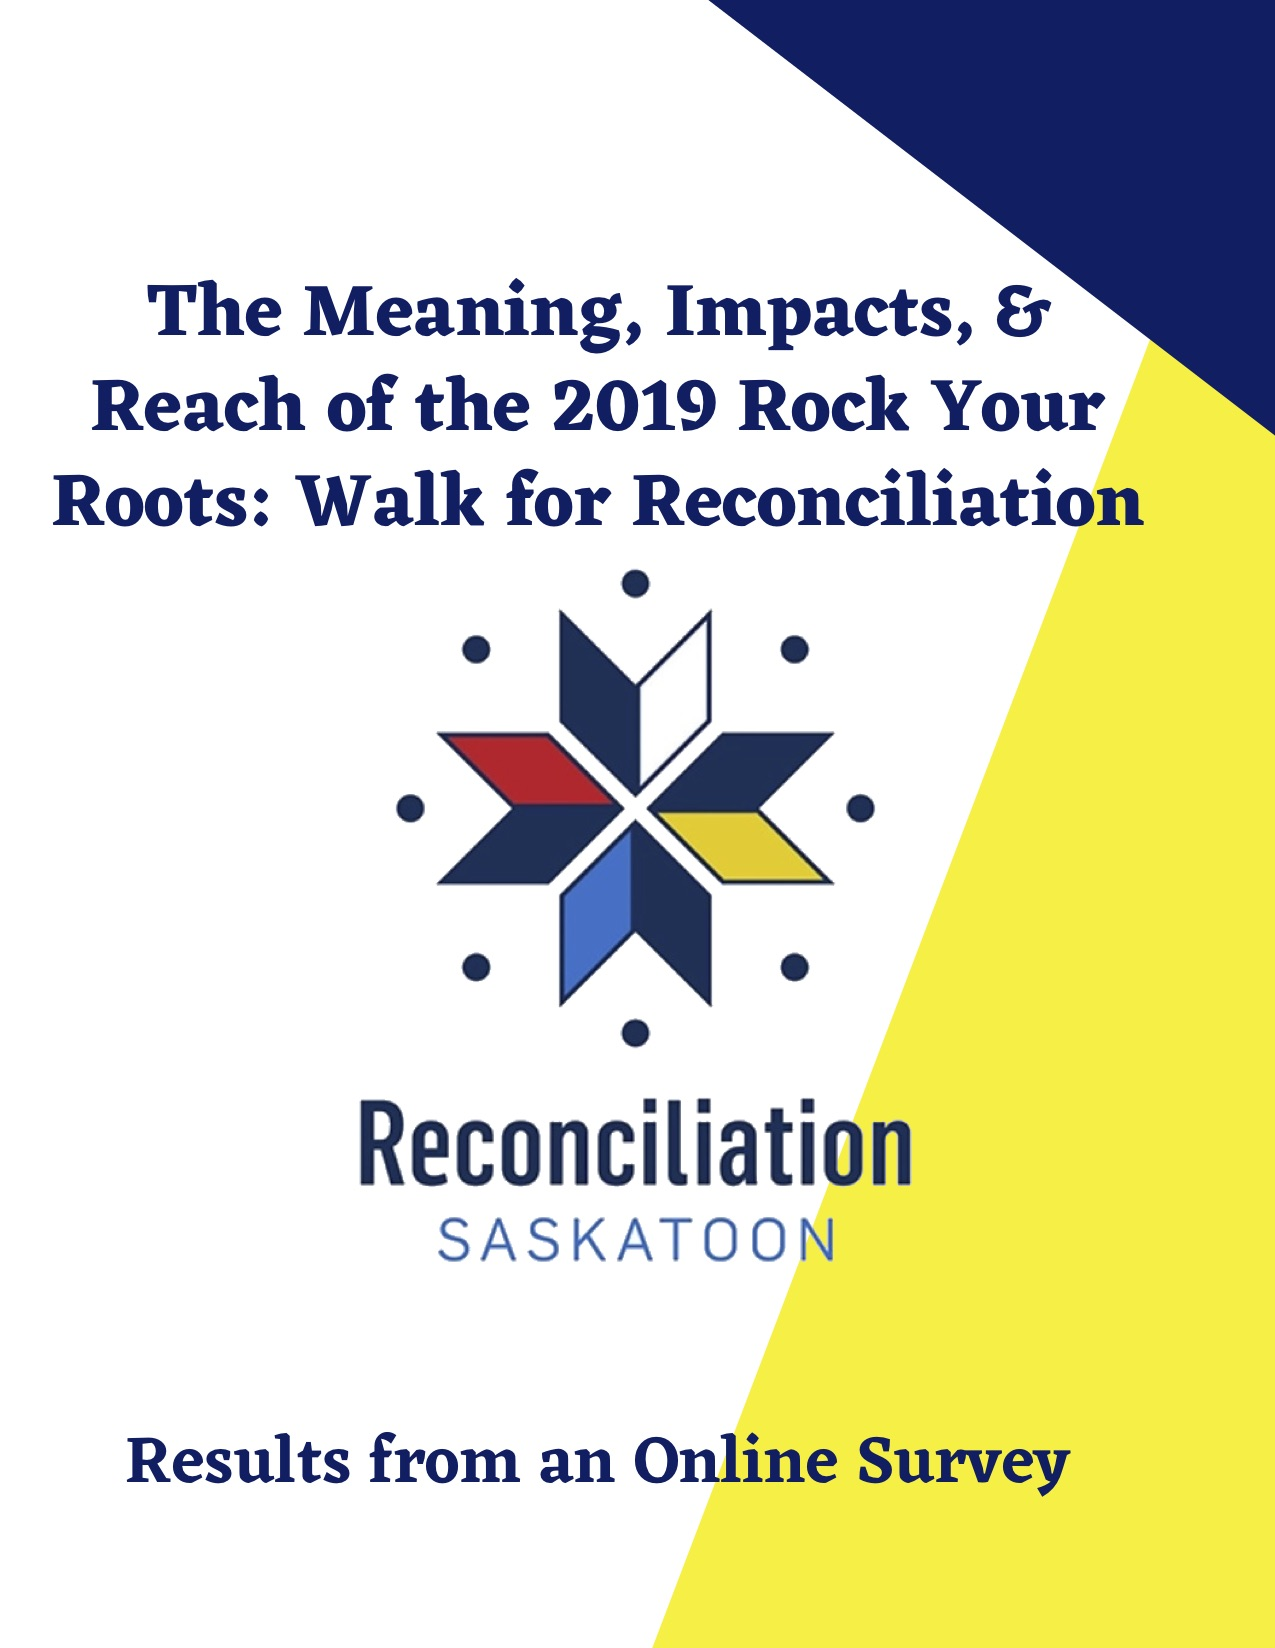 2019 Rock Your Roots Report